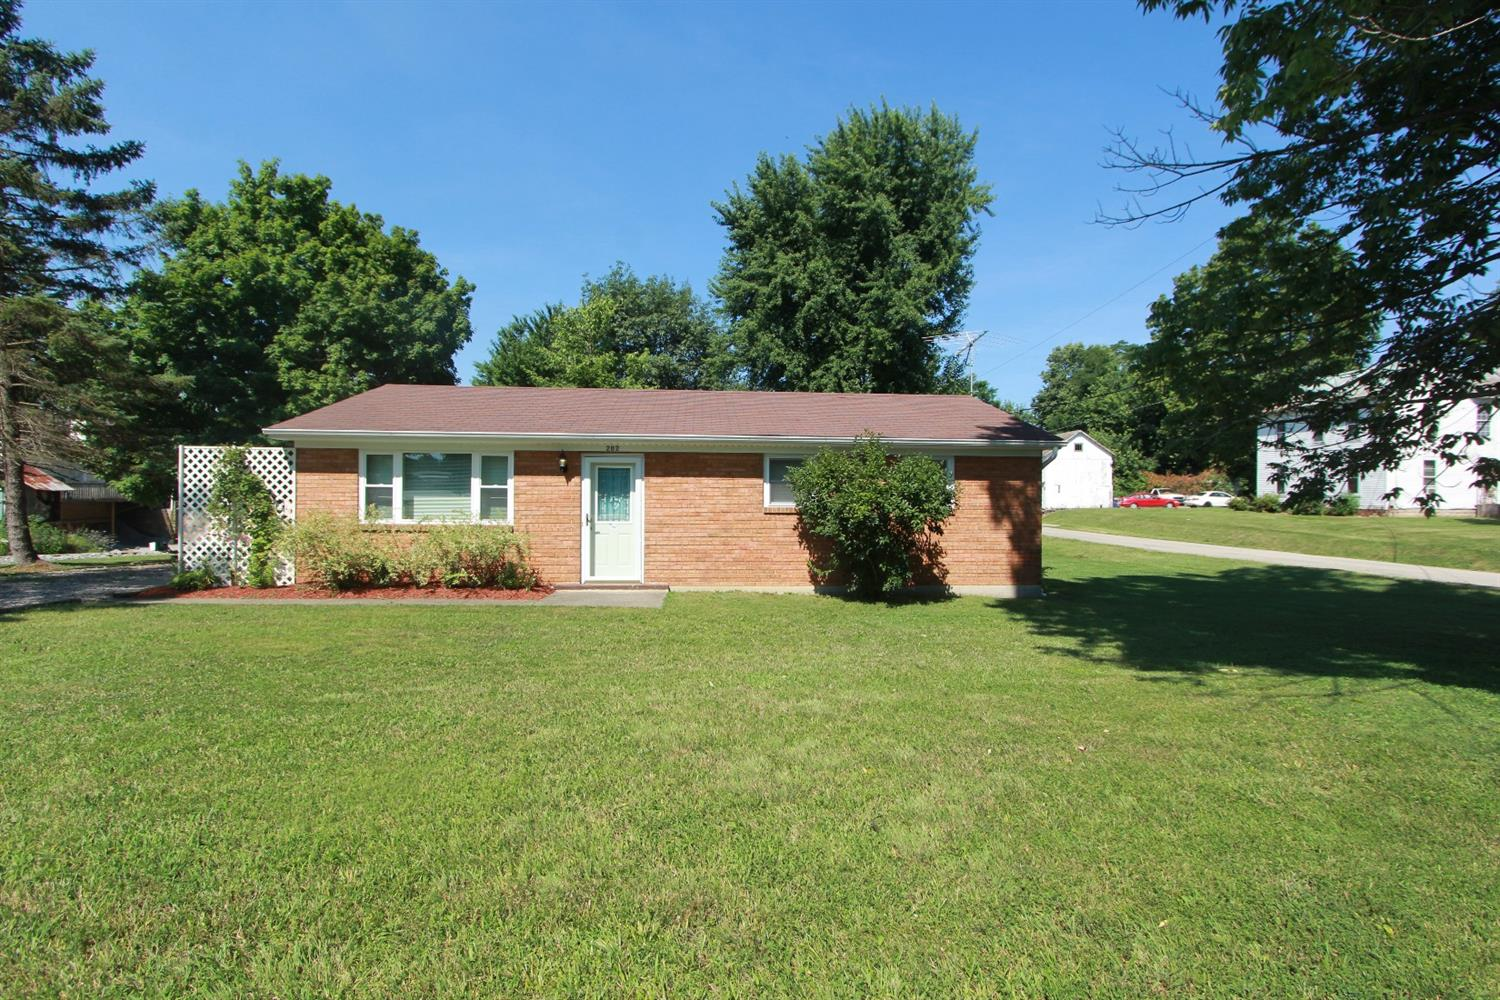 282 Covalt St Perry Twp., OH